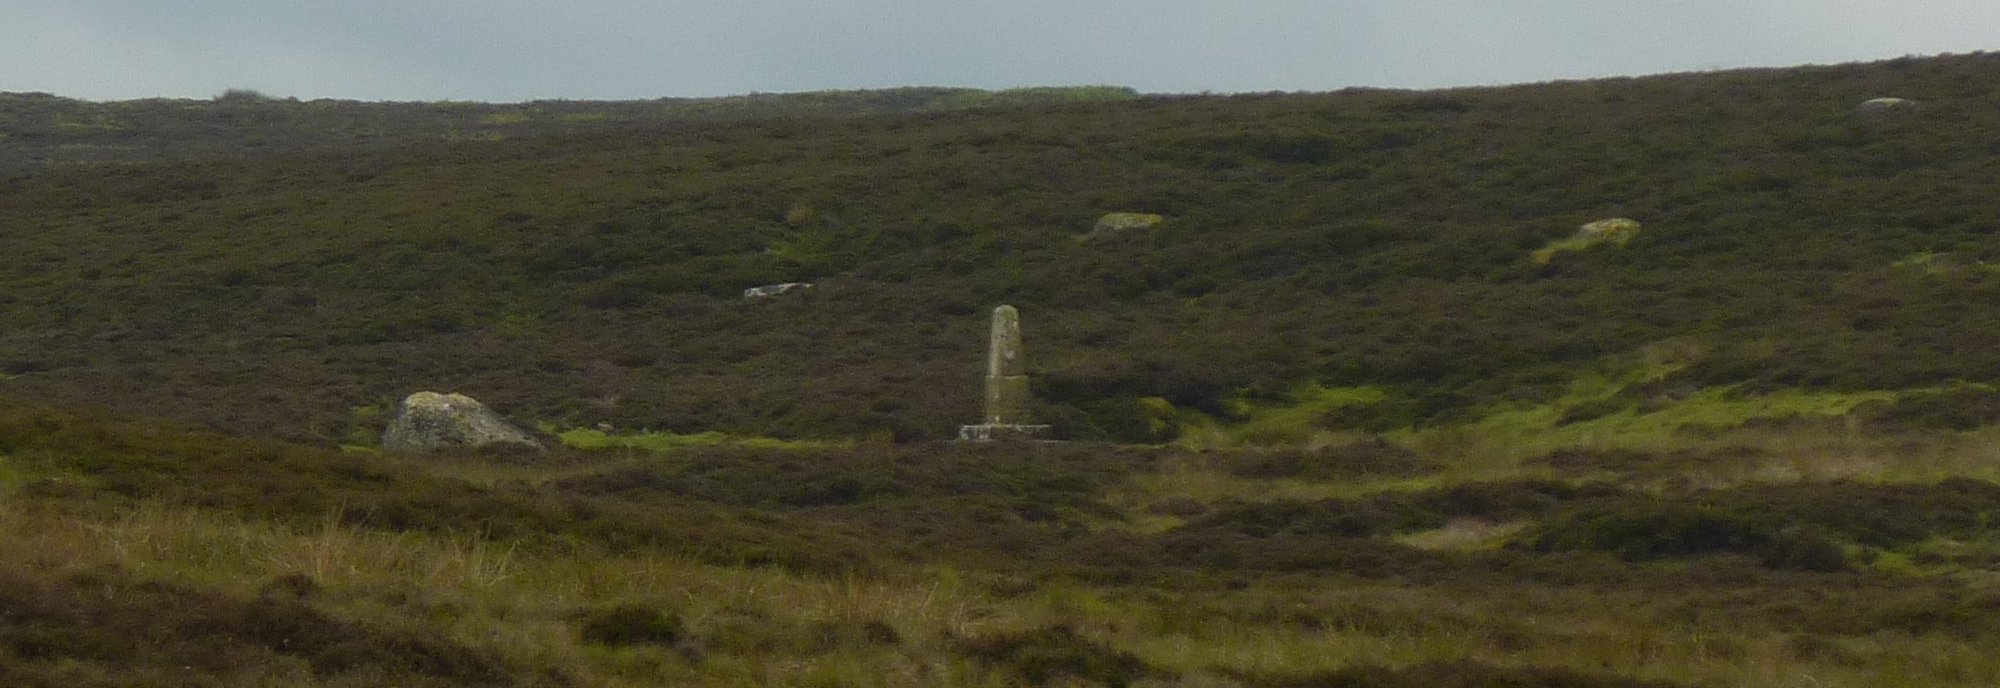 Long zoom onto Black Dub monument